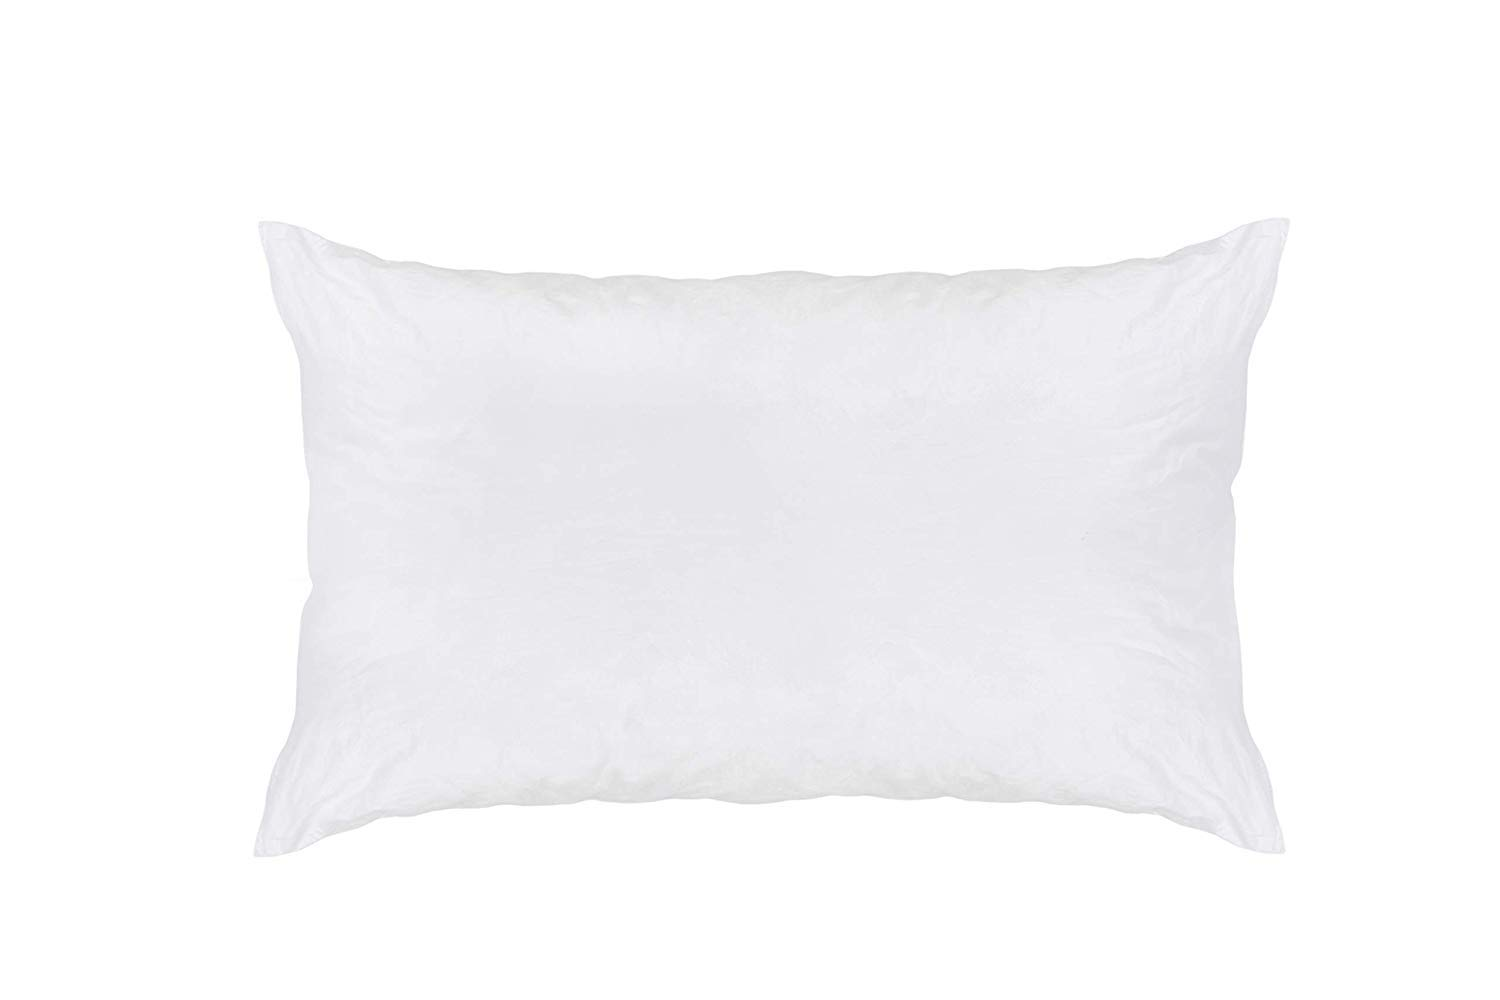 Divine Home 14''x 22'' Polyfill Insert for 12x20 Pillow Cover (2 Pack) by Divine Home